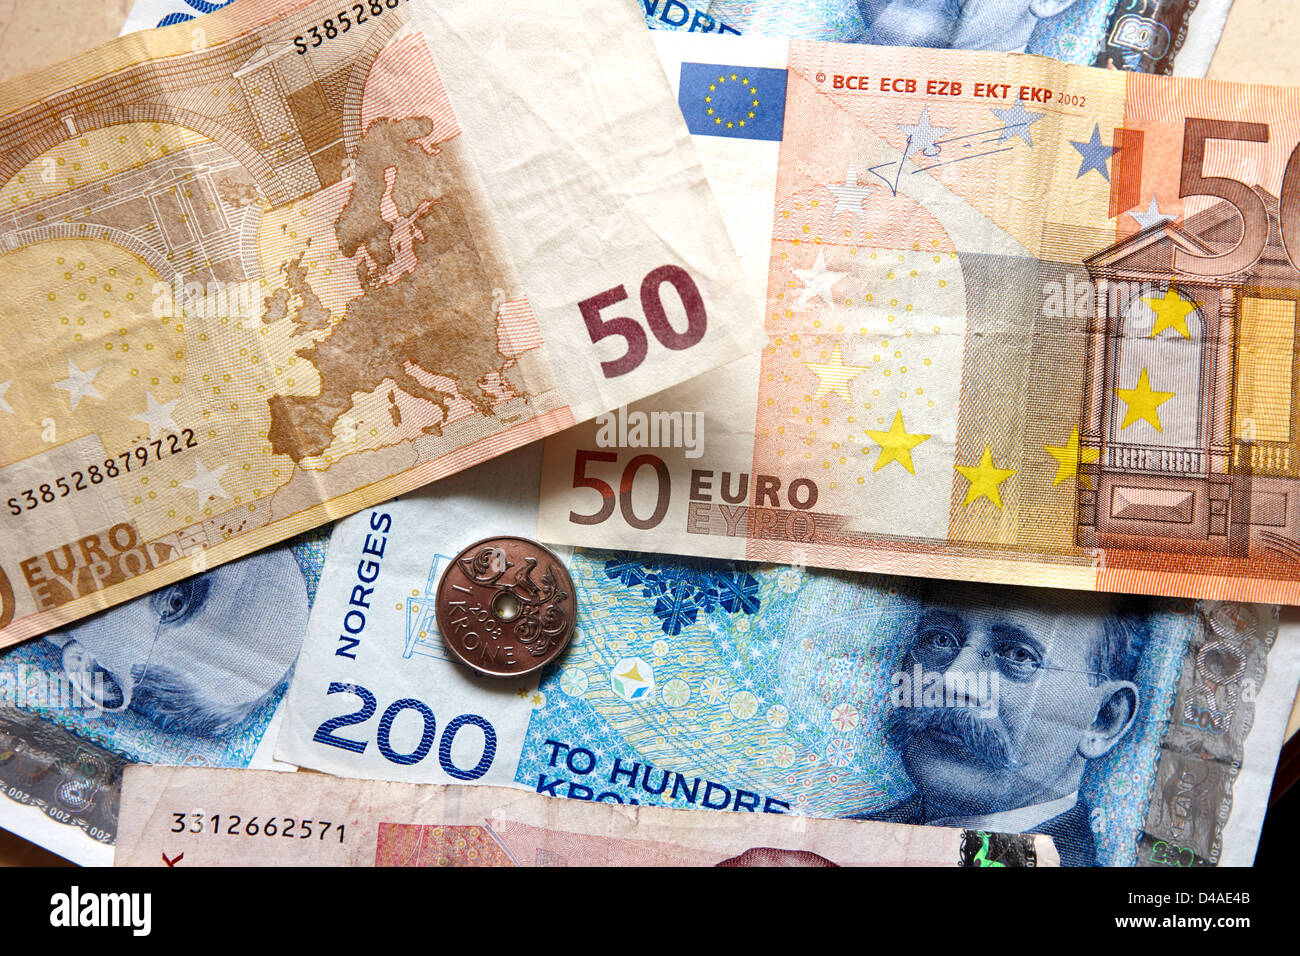 euros and norwegian kroner currency - Stock Image